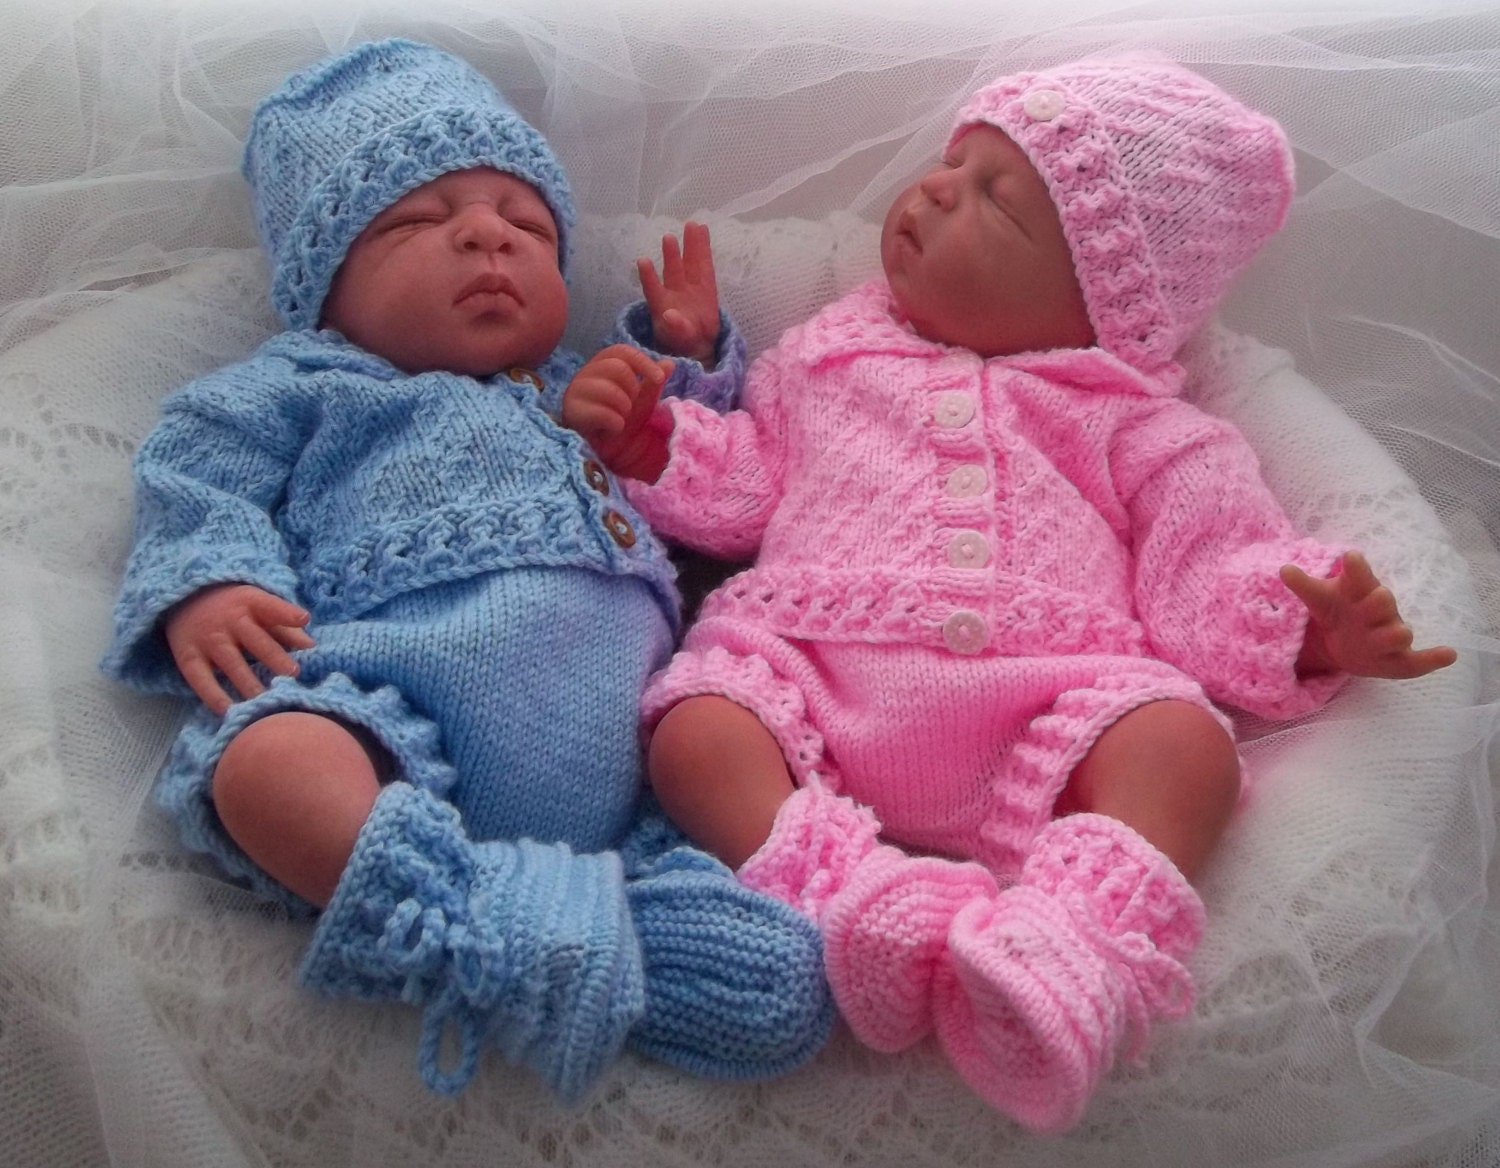 Knitting Patterns For Baby Newborn Doll : Baby Knitting Pattern Boys Girls Reborn Dolls Newborn to